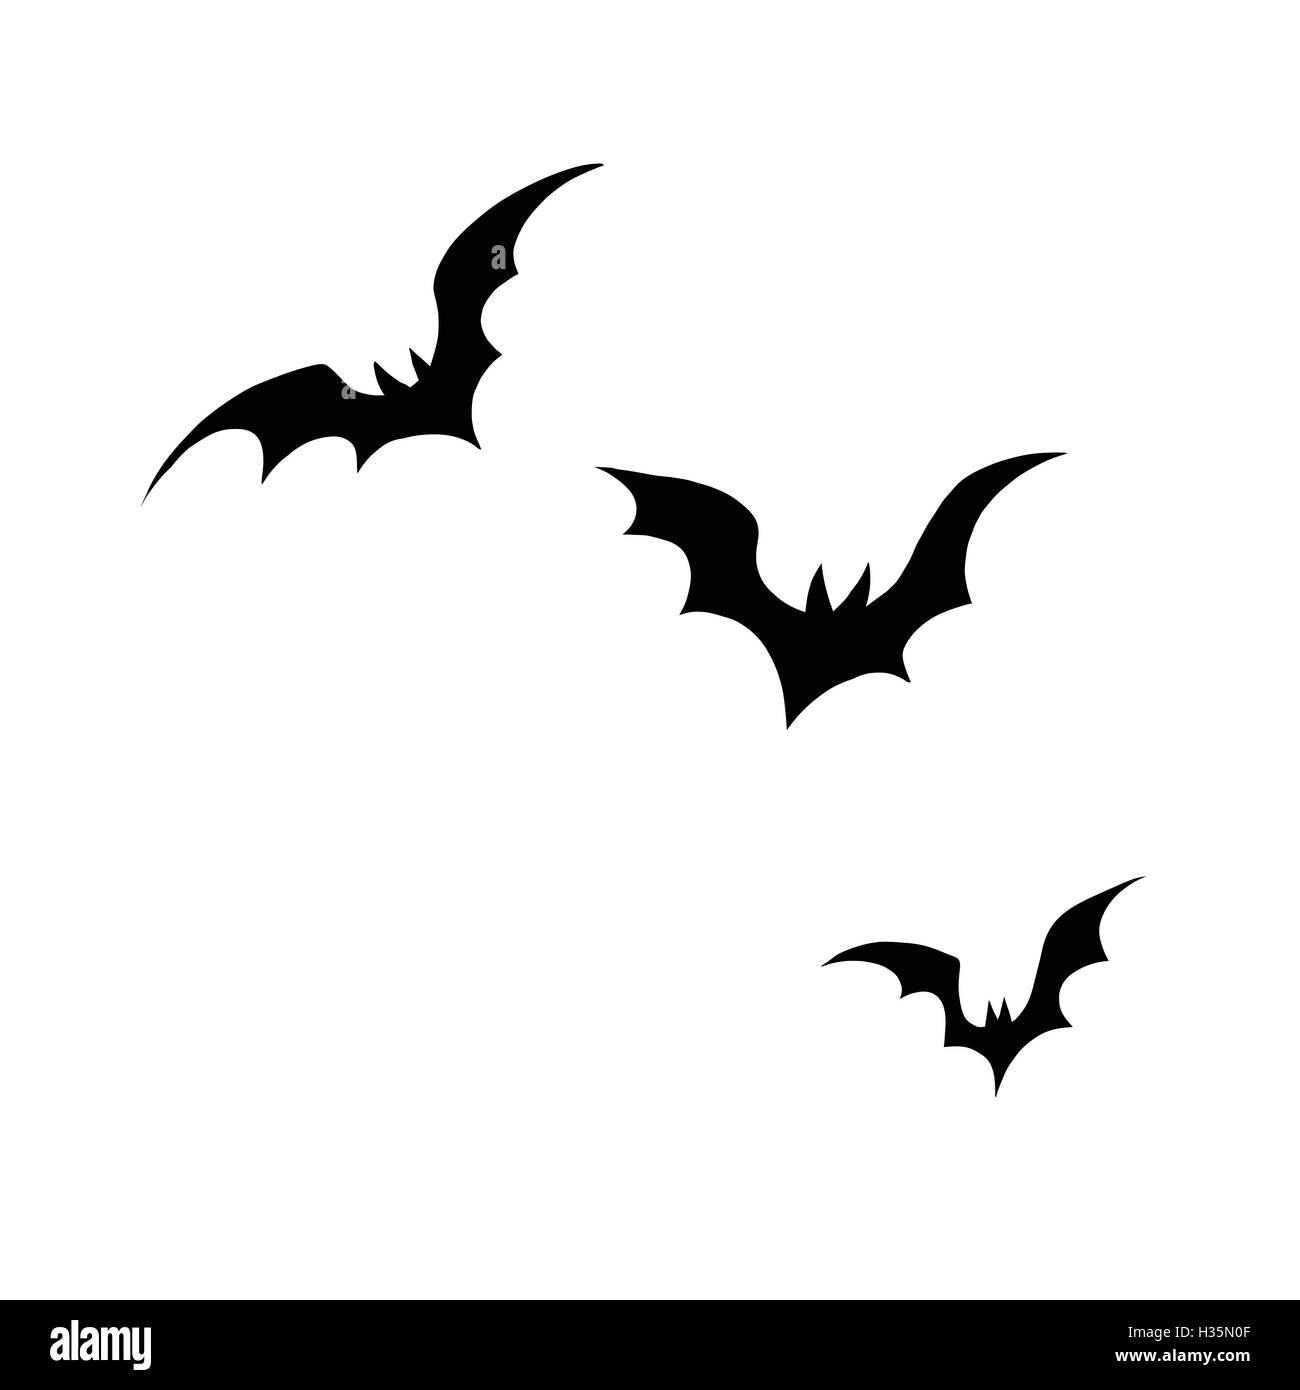 black silhouettes of bats on a white background stock vector art